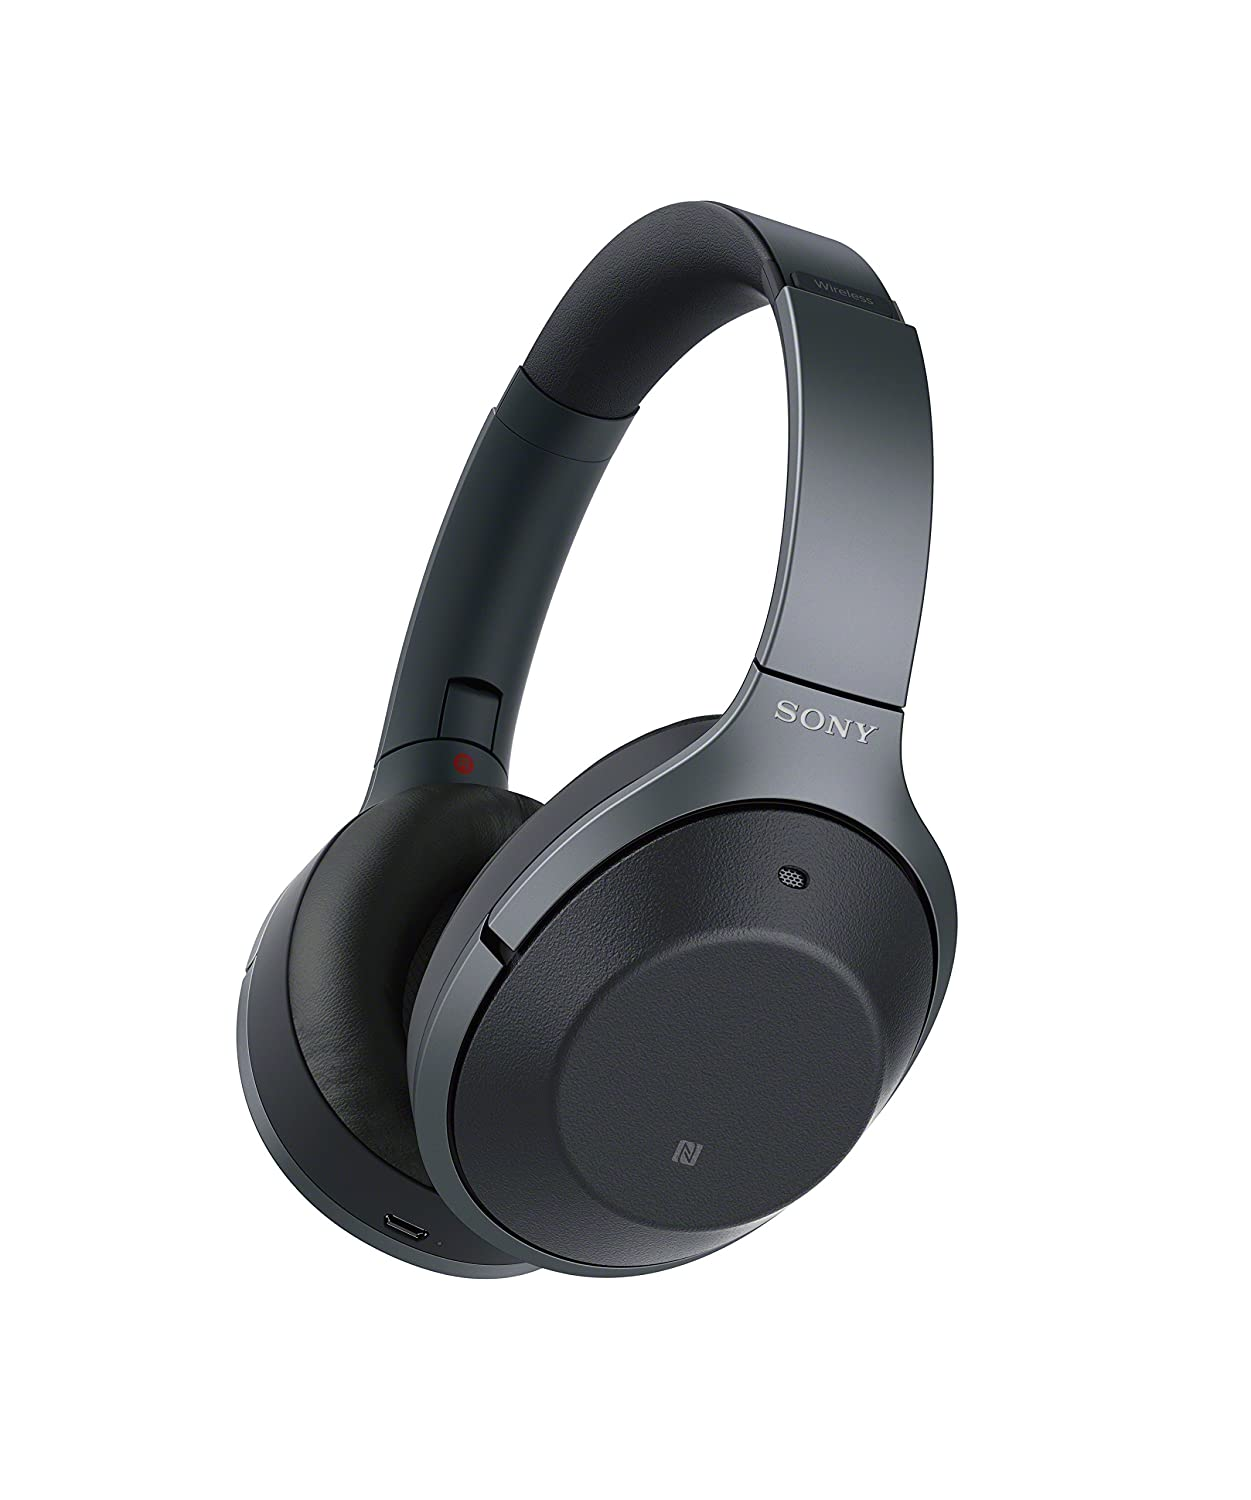 Sony WH1000XM2 Headphones Black Friday Deals 2019